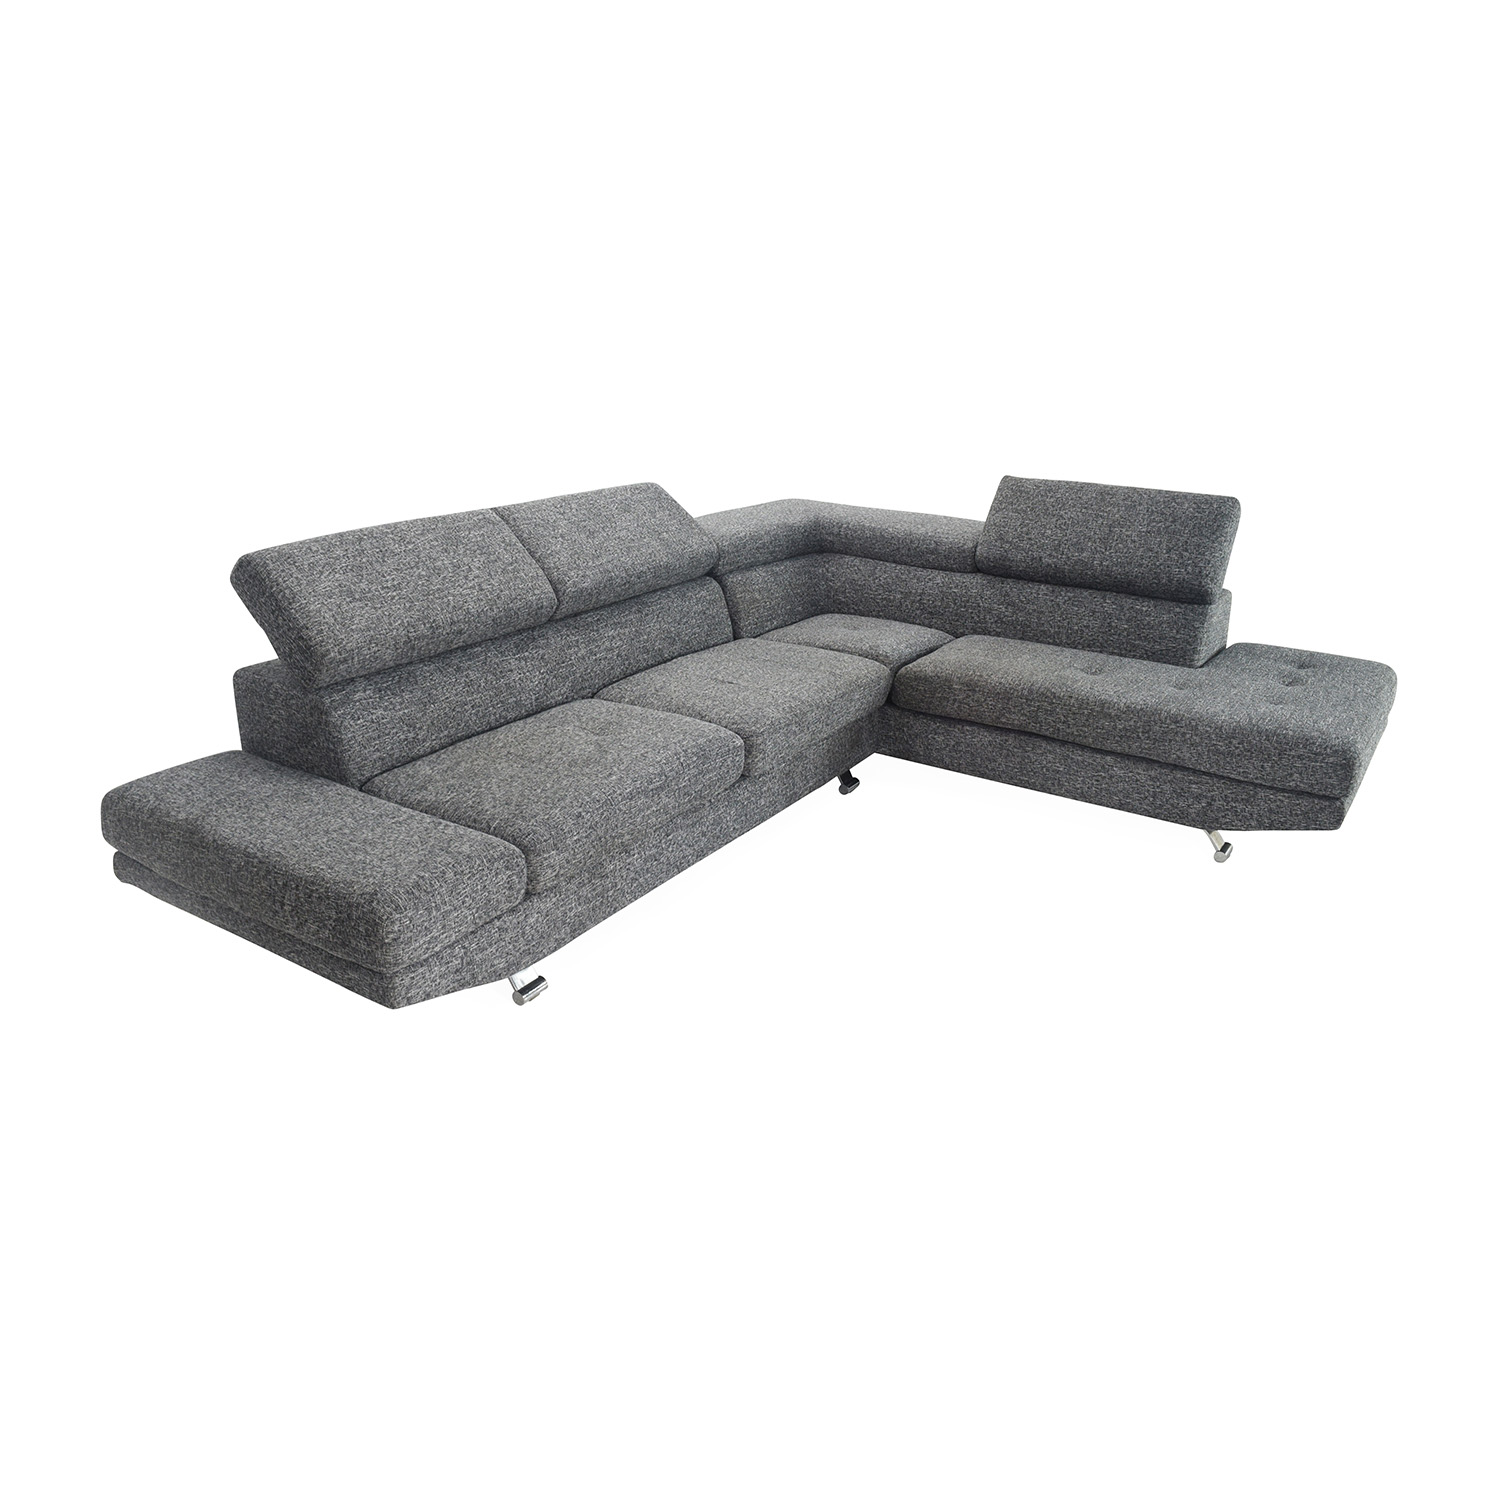 Unknown brand Gray Sectional Entertainment Couch second hand